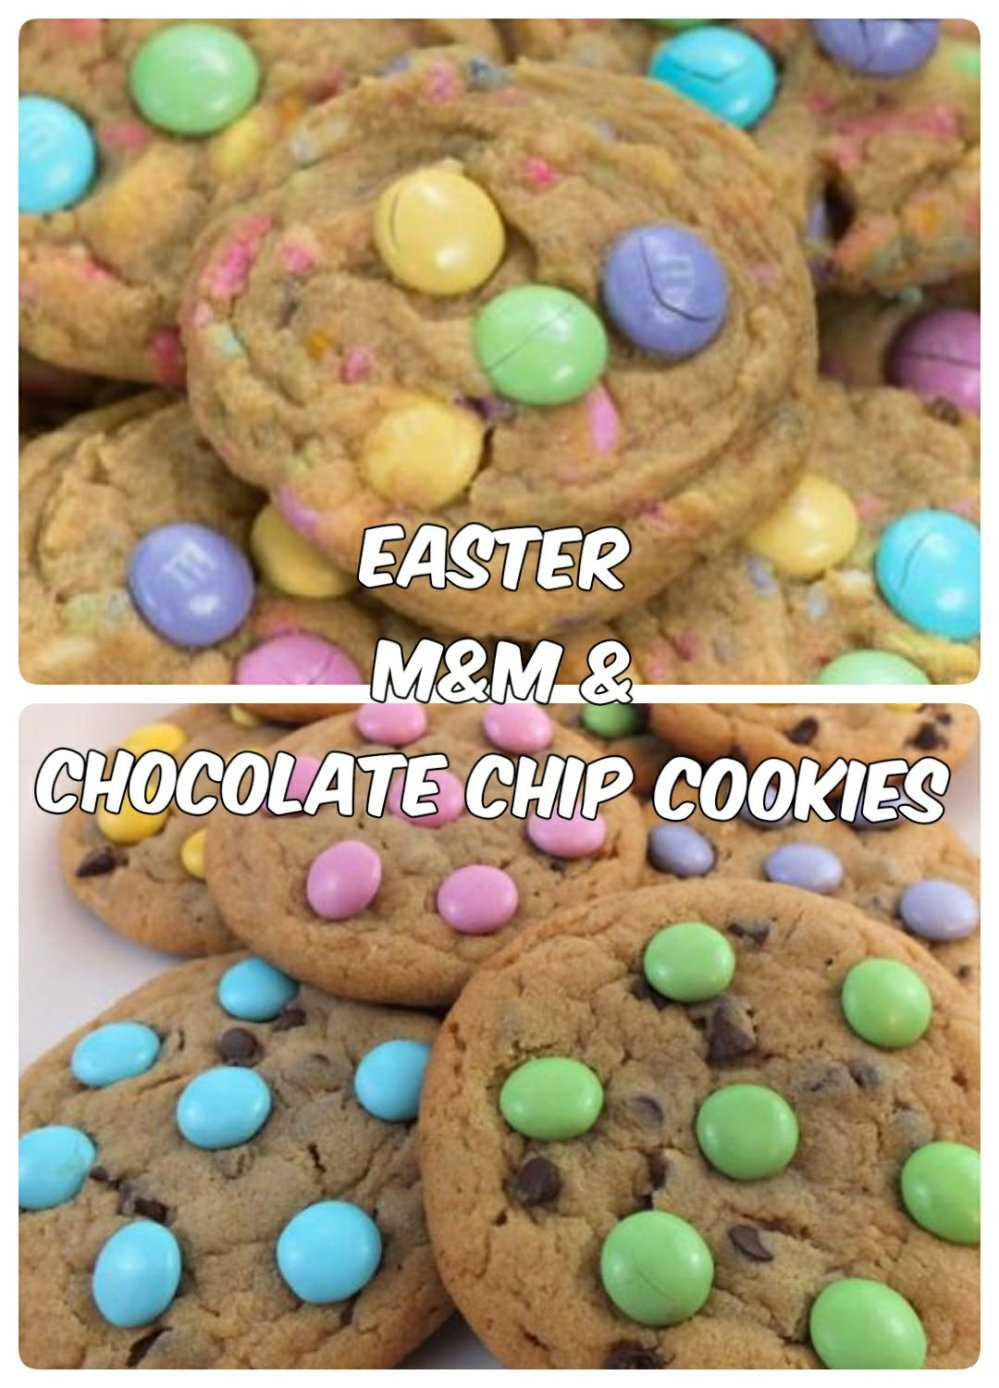 easter-mm-cookie-recipe-1-640x959427610744.jpg